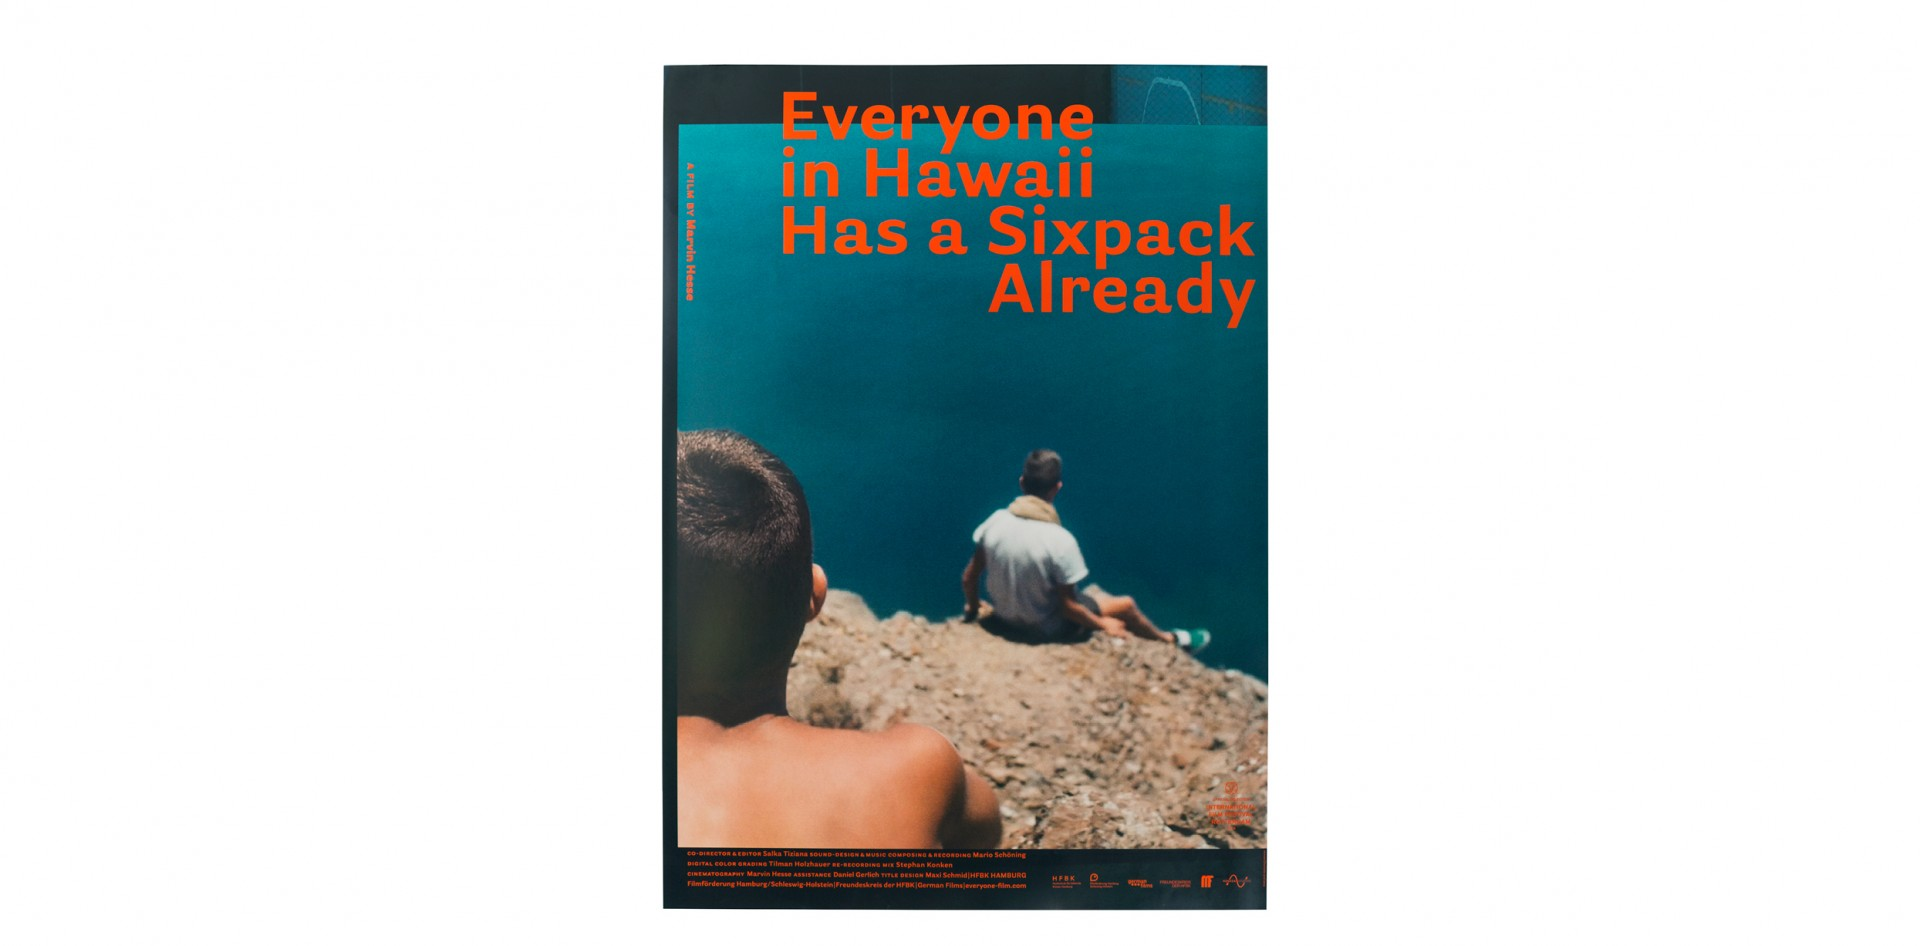 □ Everyone in Hawaii has a Sixpack already